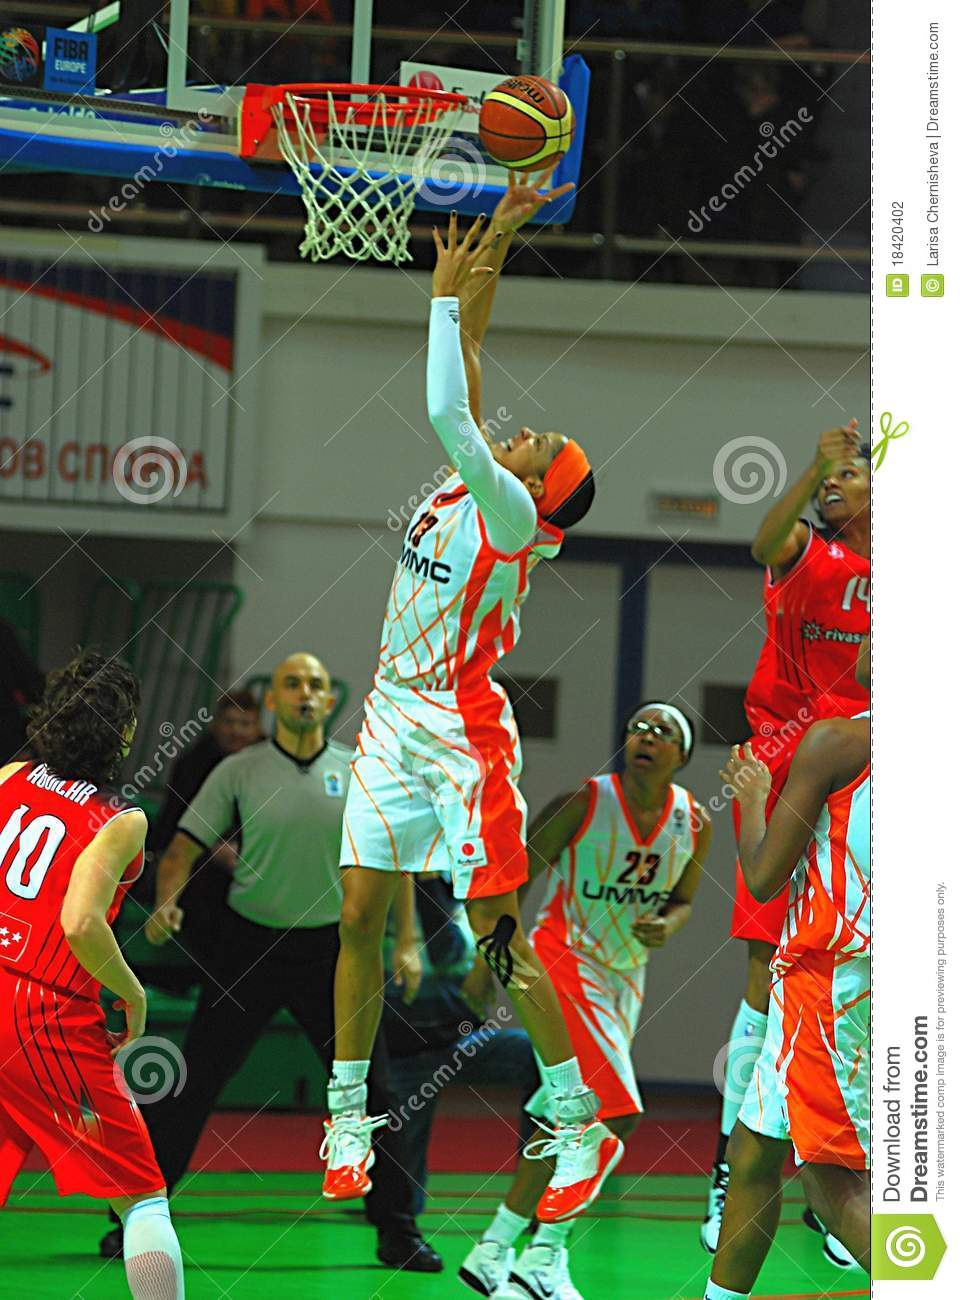 Candace Parker scores the ball